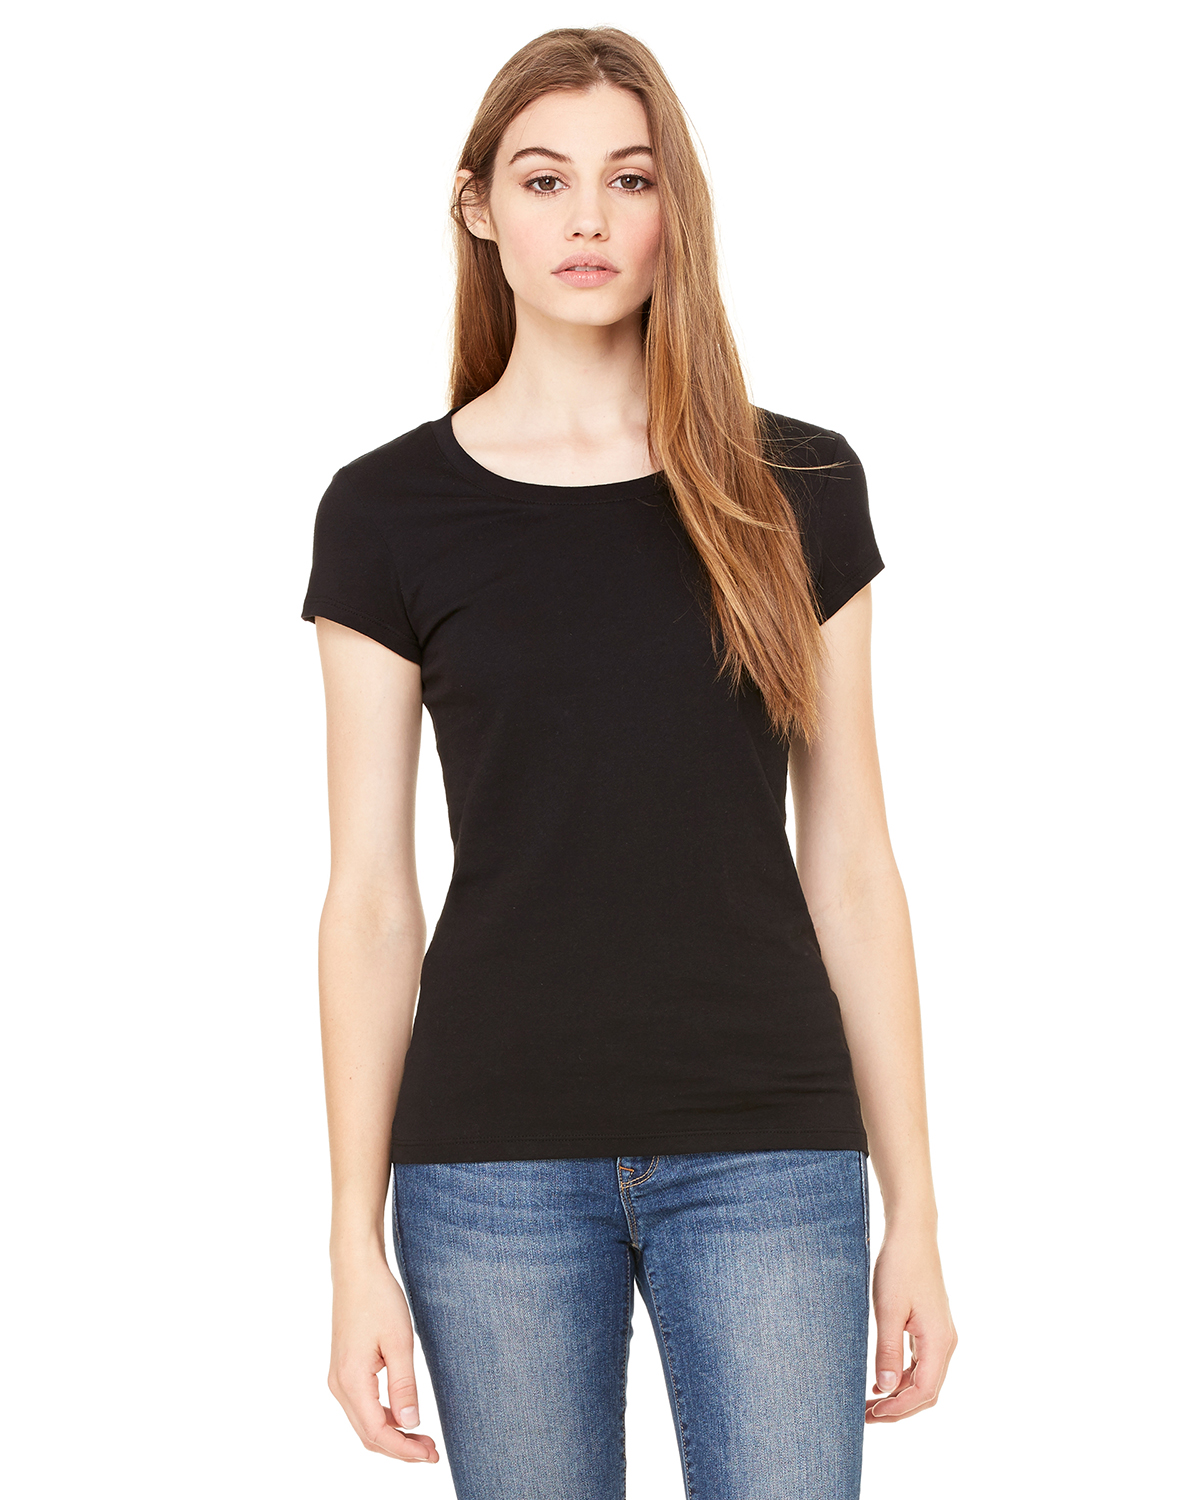 bella 8101 Ladies' Marcelle Sheer Jersey Longer Length T-Shirt